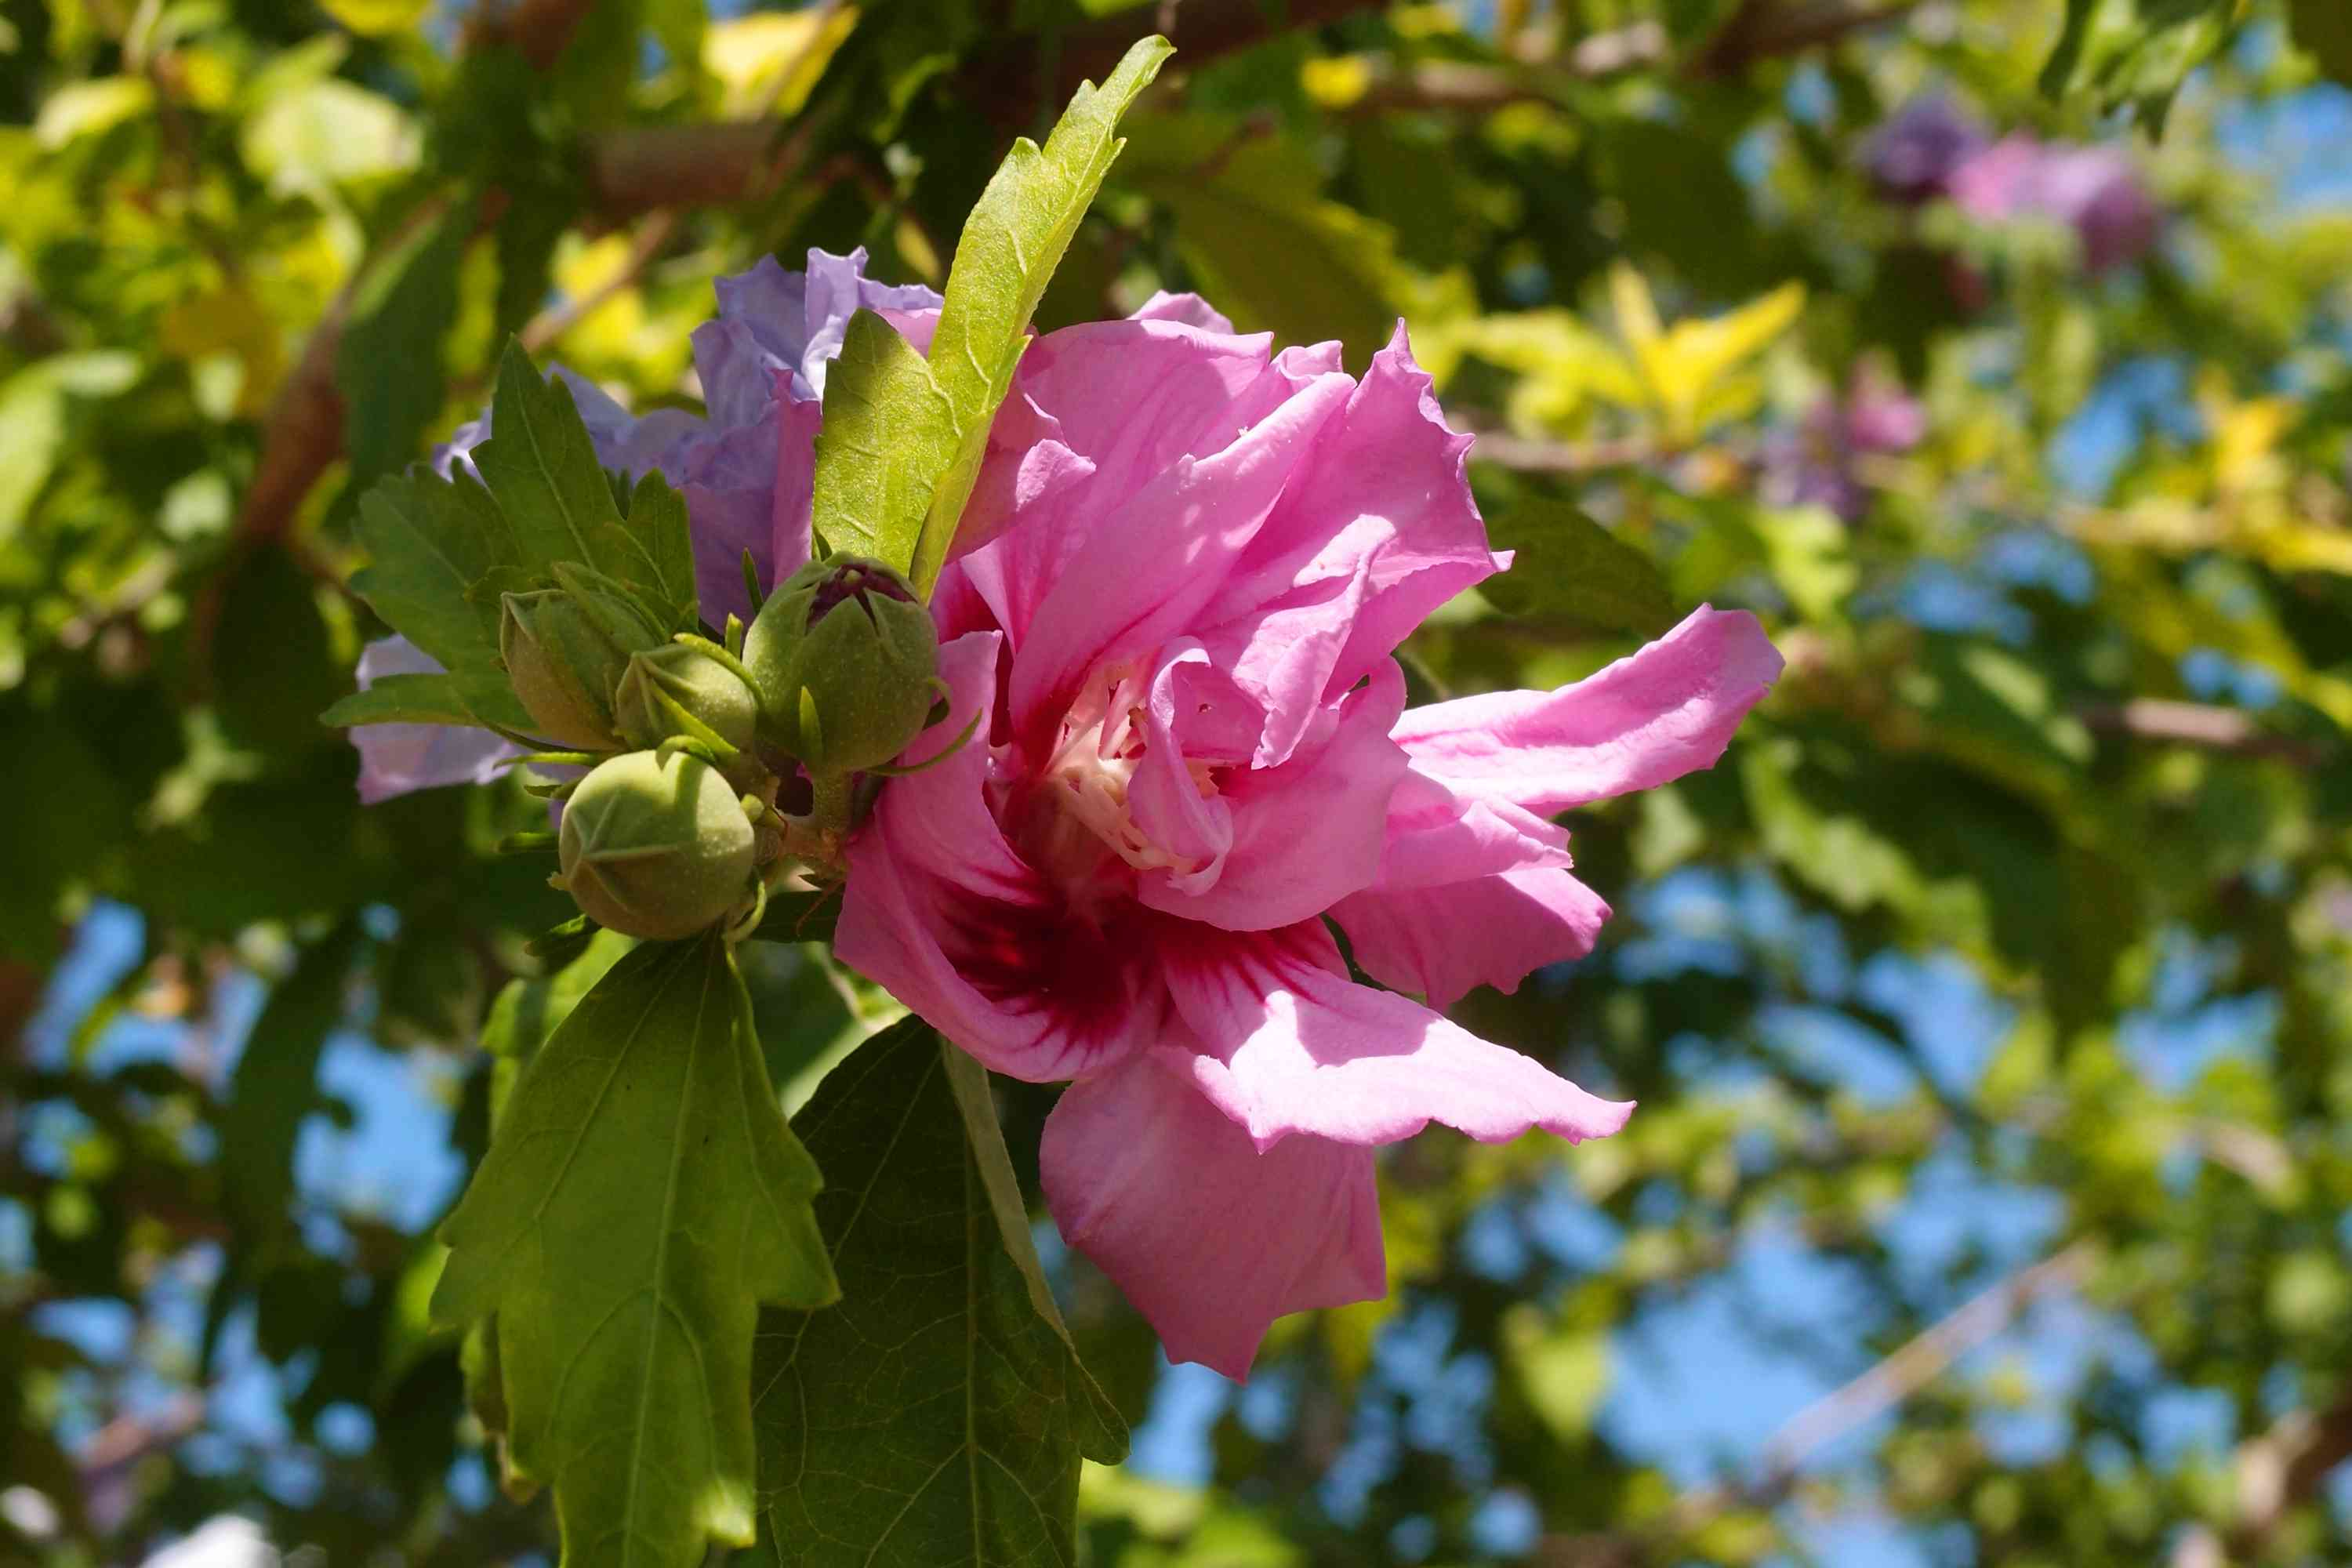 Hibiscus syriacus Lavender Chiffon or Rose of Sharon. Pink flower in bloom